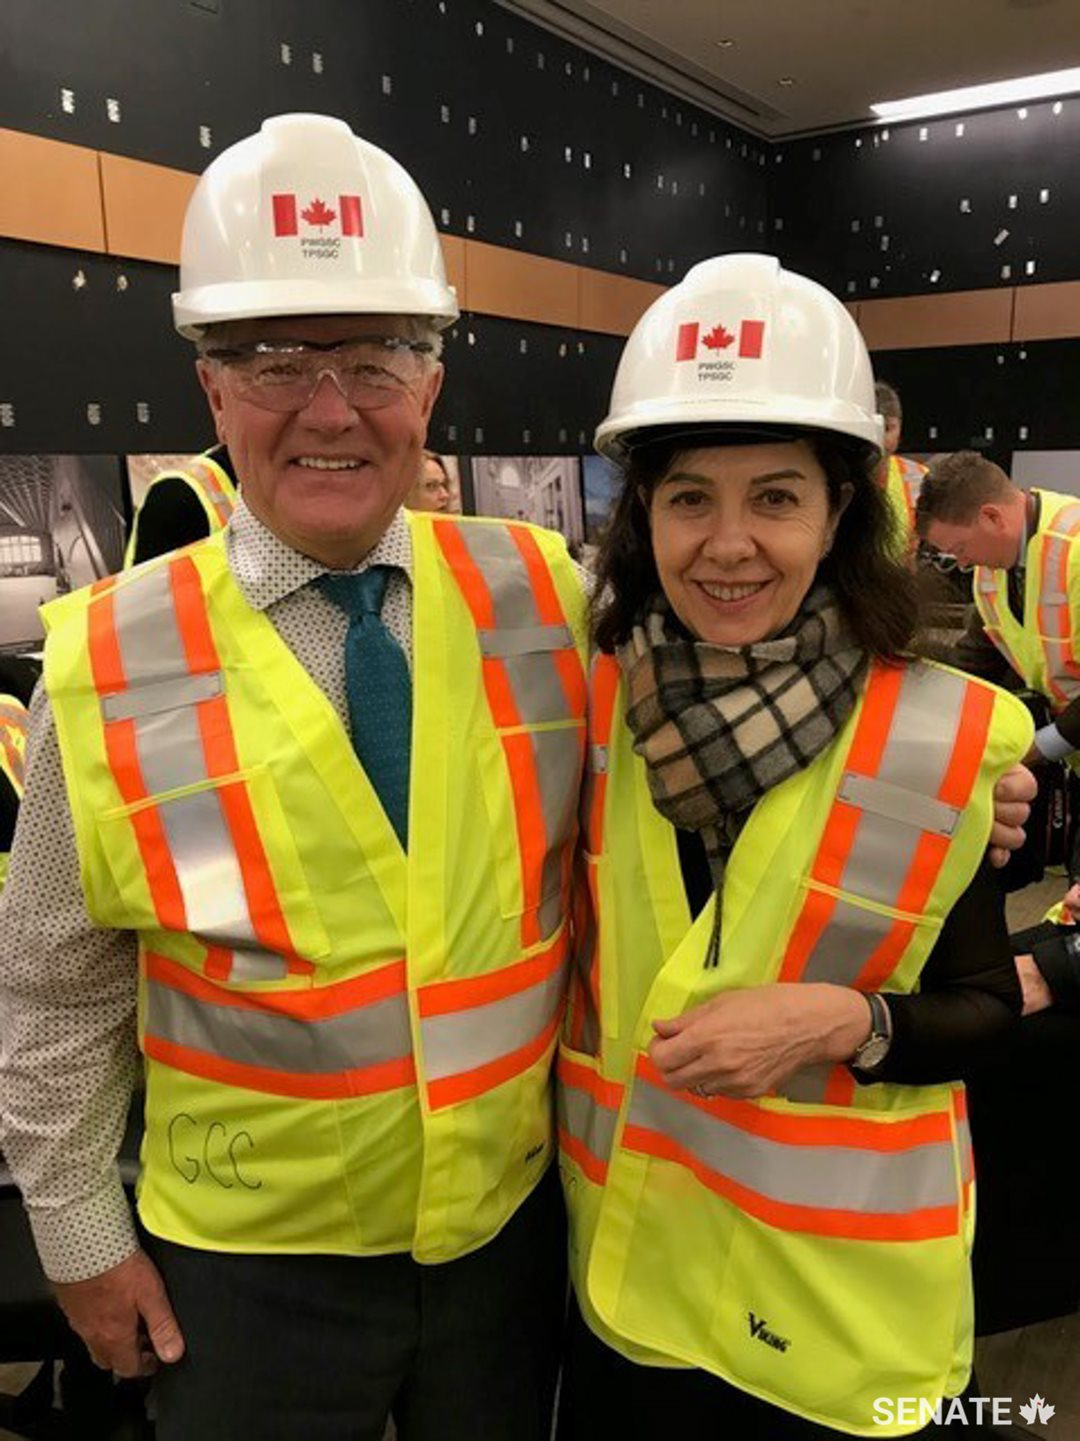 Senators Donald Neil Plett and Raymonde Saint-Germain visit The Senate of Canada Building, formerly known as the Government Conference Centre. The two active members of the Standing Senate Committee on Internal Economy, Budgets and Administration are interested in the progress of the future temporary home of the Senate.